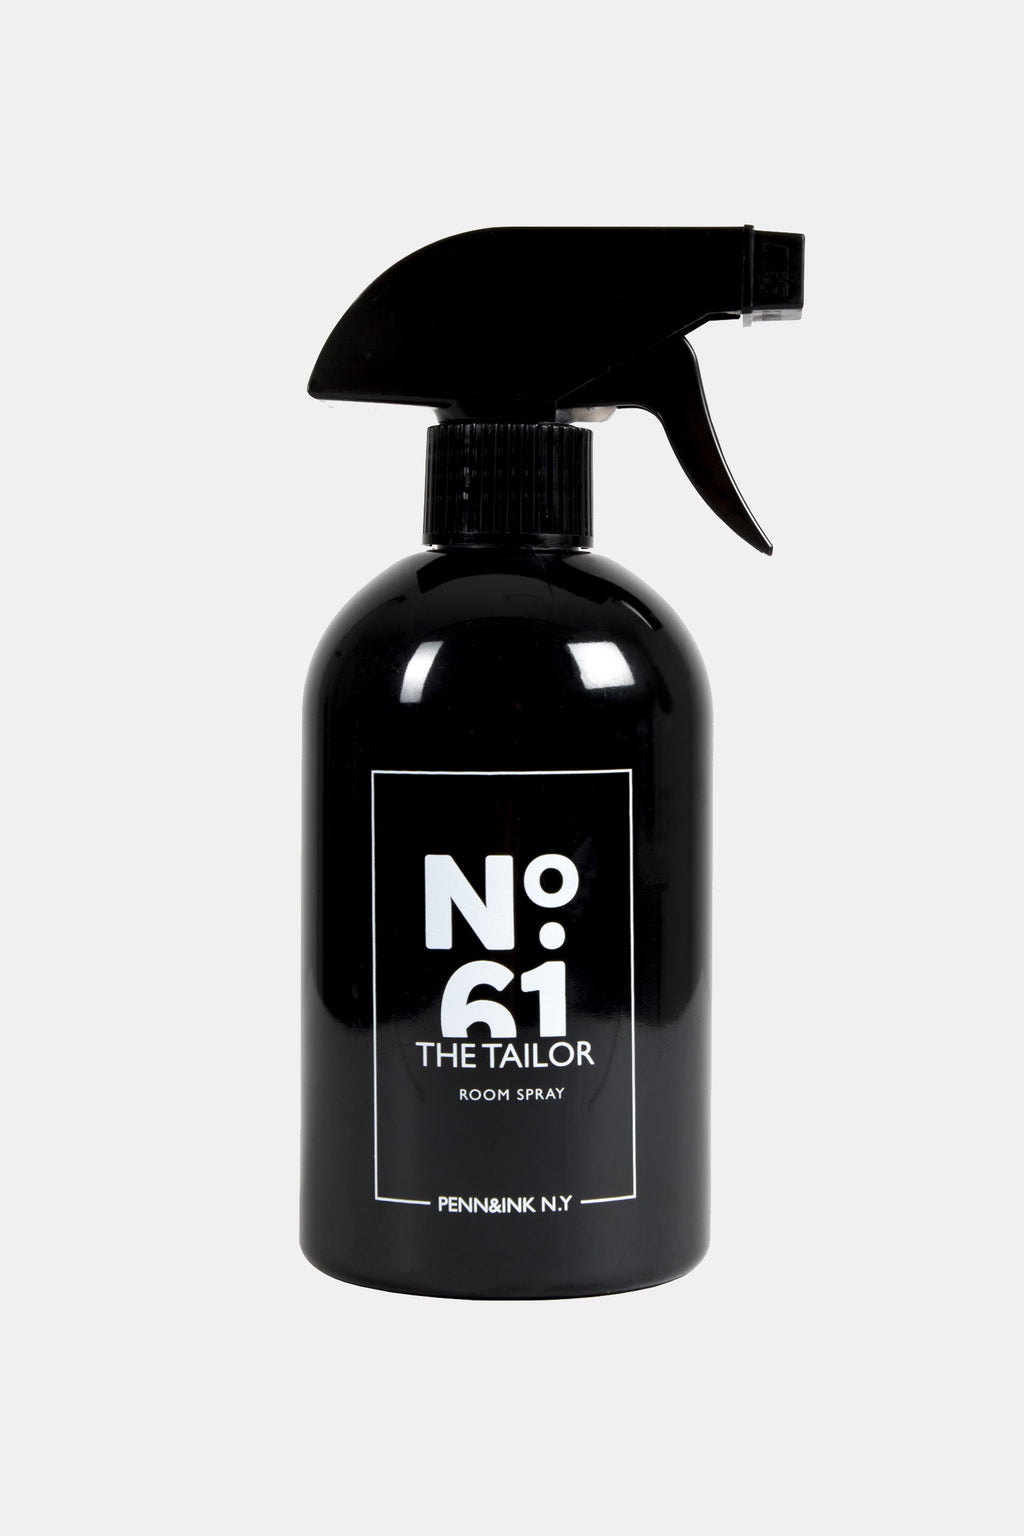 NO. 61 THE TAILOR ROOM SPRAY